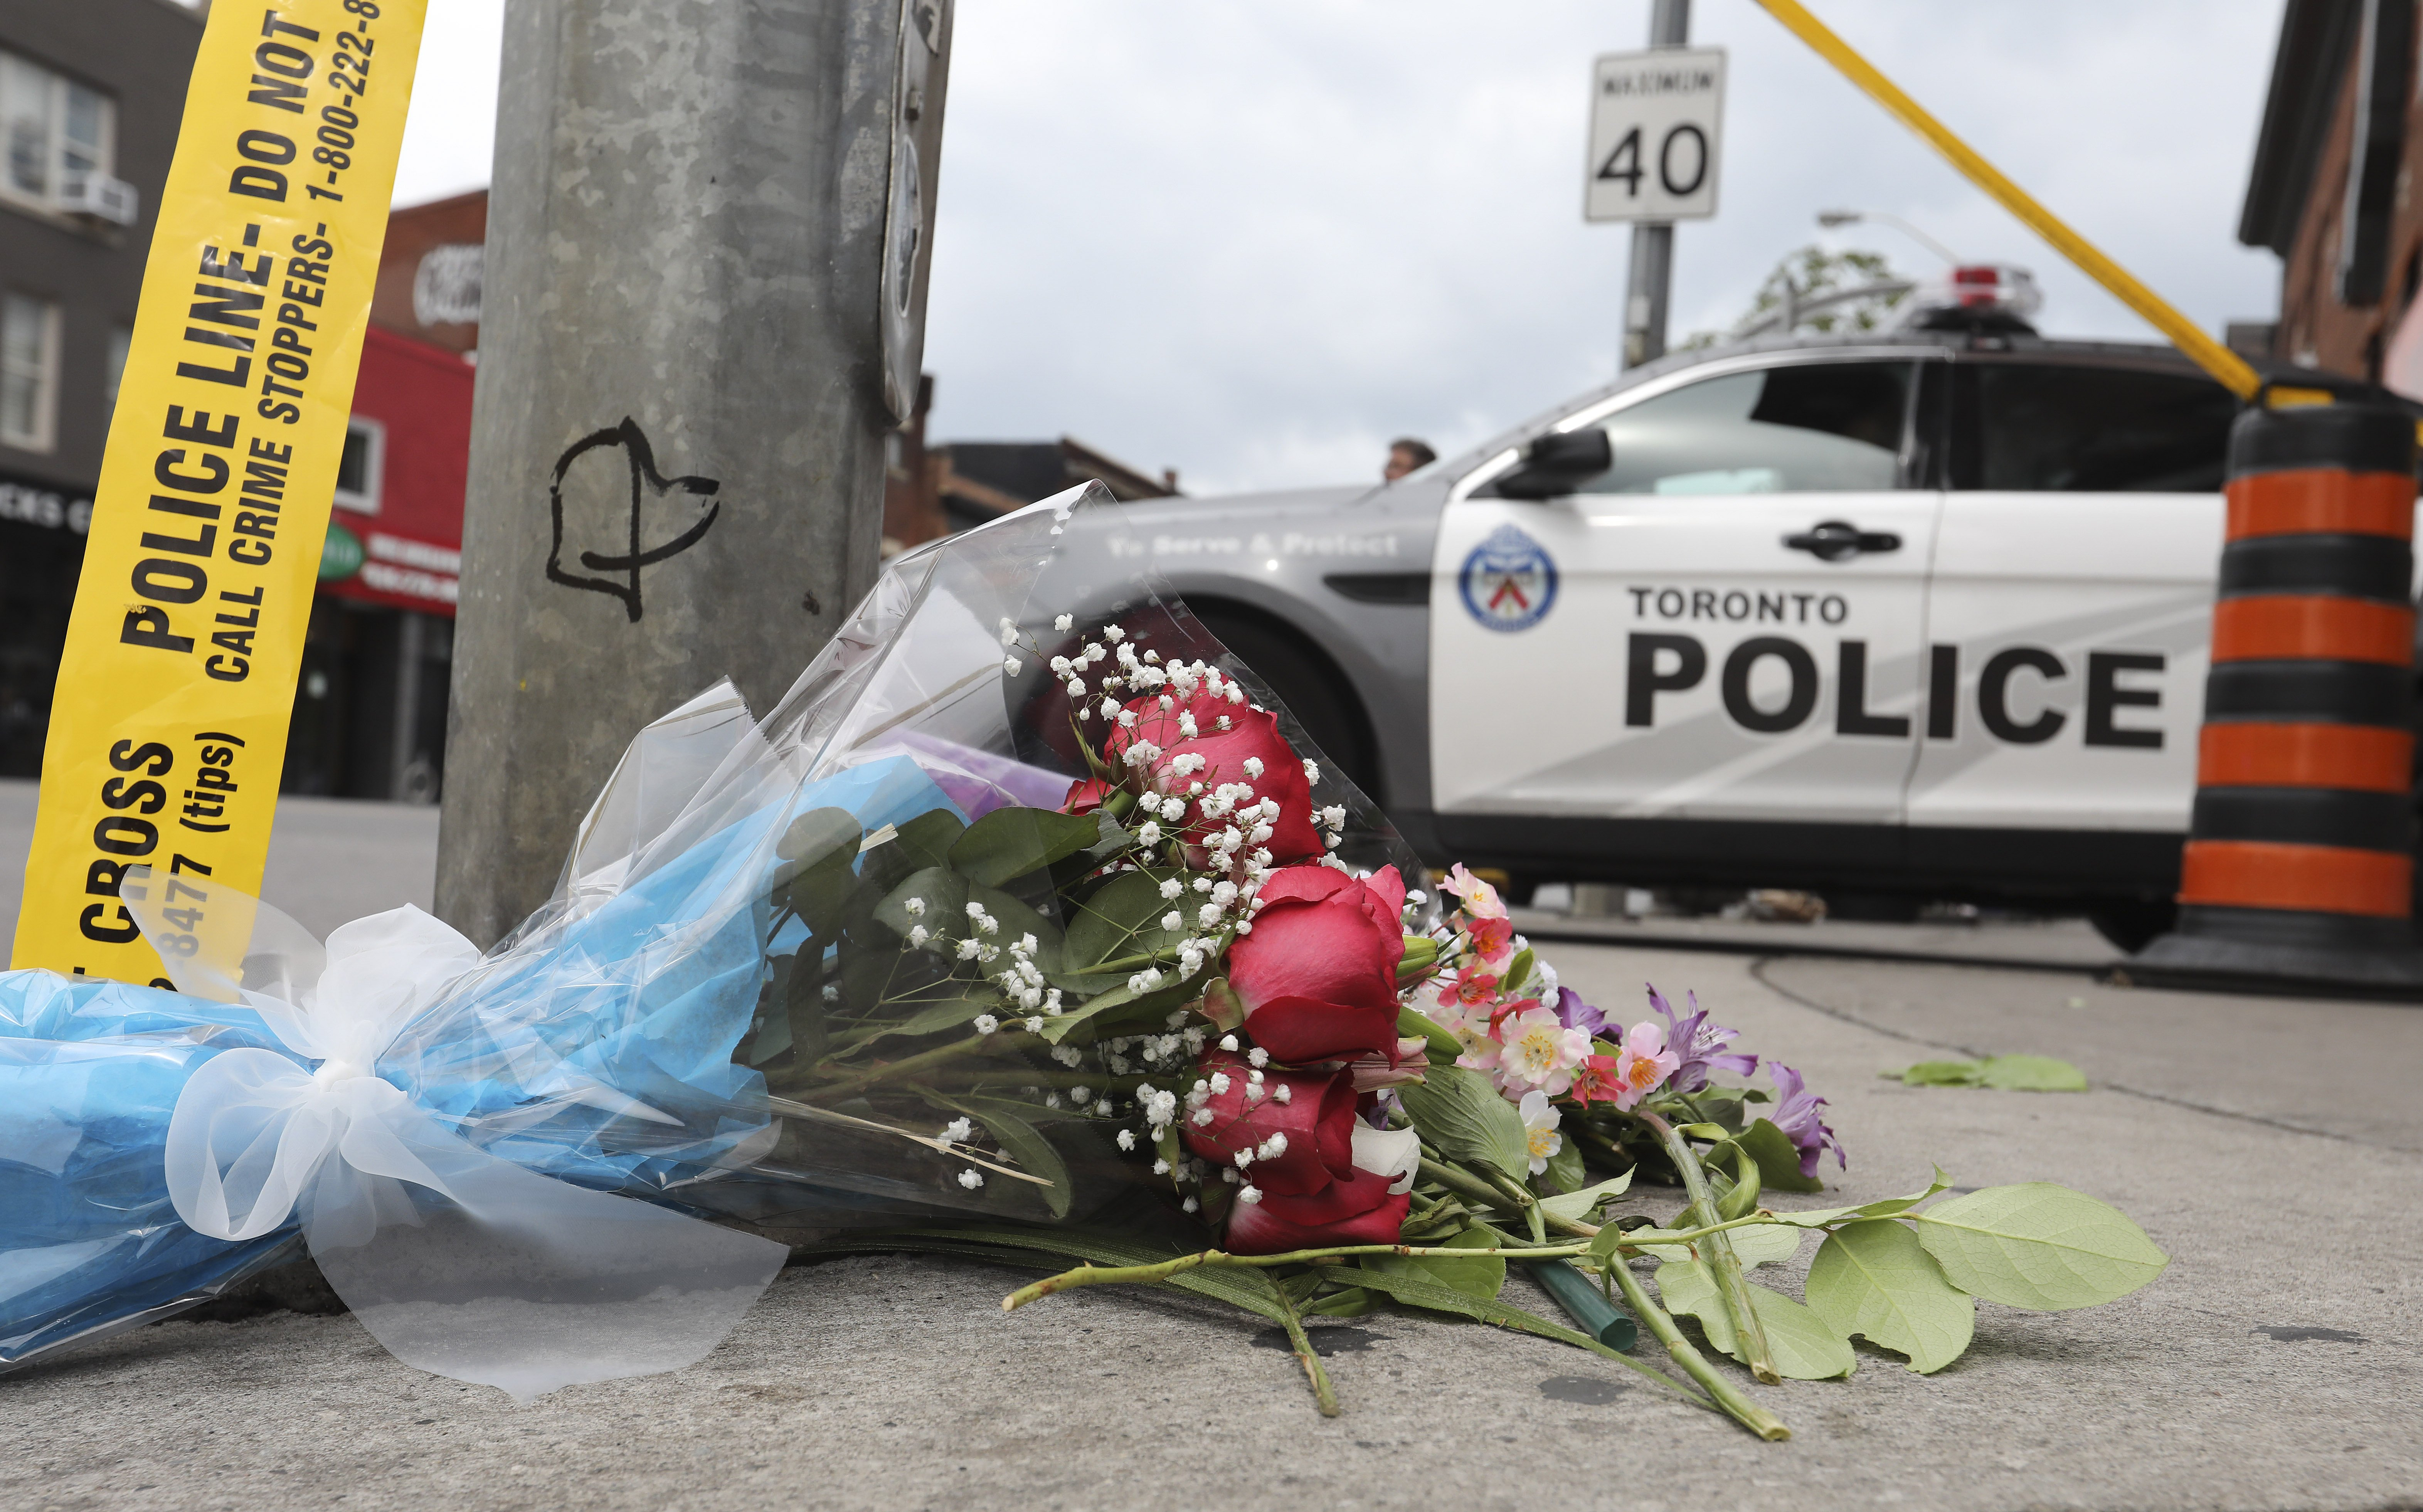 A makeshift memorial commemorates a mass shooting that killed two on Danforth Avenue in Toronto, Ontario on July 22, 2018.